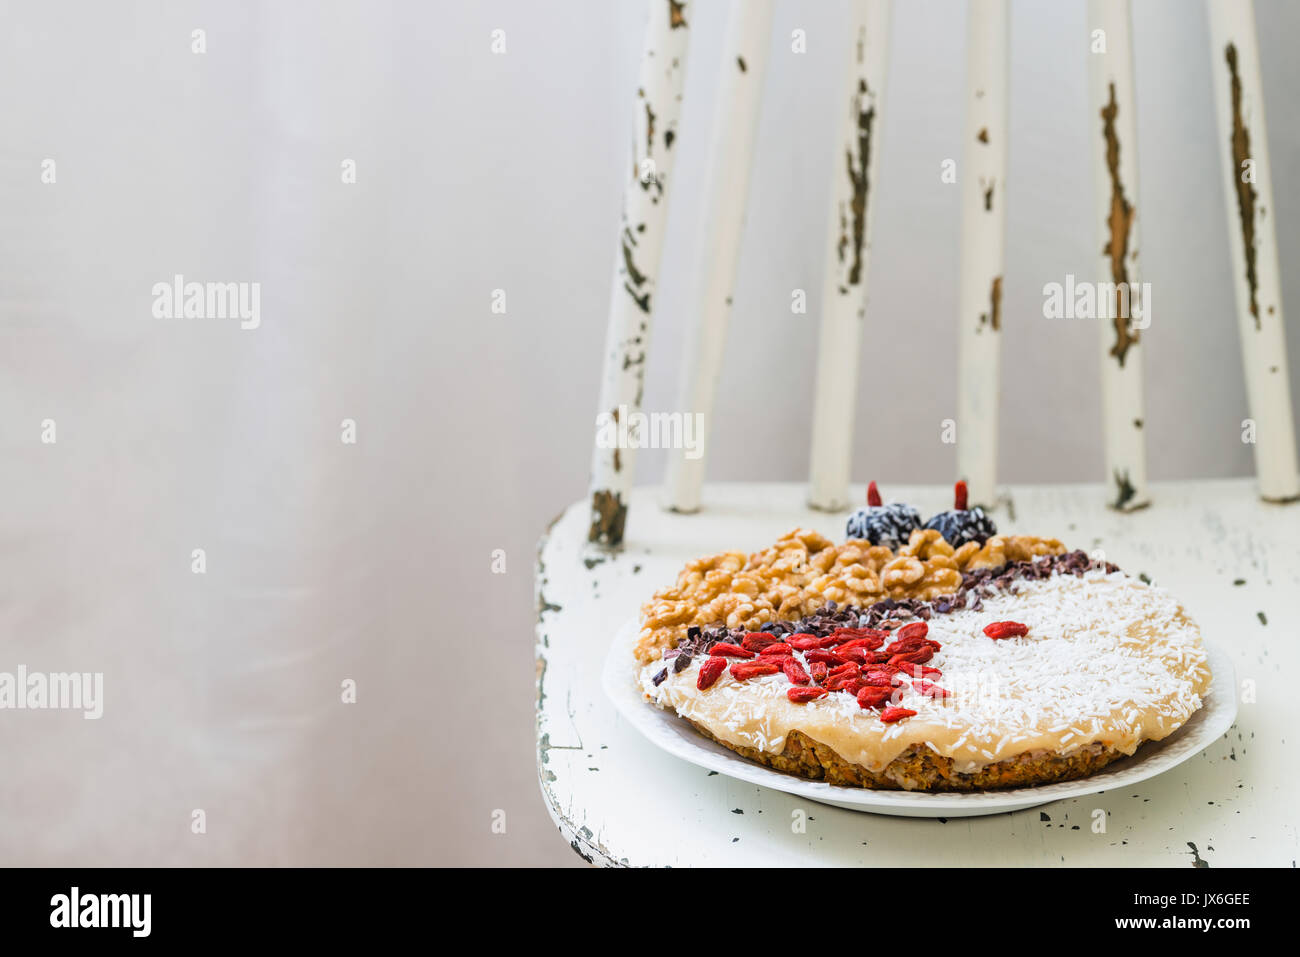 Raw vegan sweet carrot cake with cream topped with walnuts, goji berries, chocolate truffles, coconut flakes and cocoa crochet. Healthy homemade desse - Stock Image